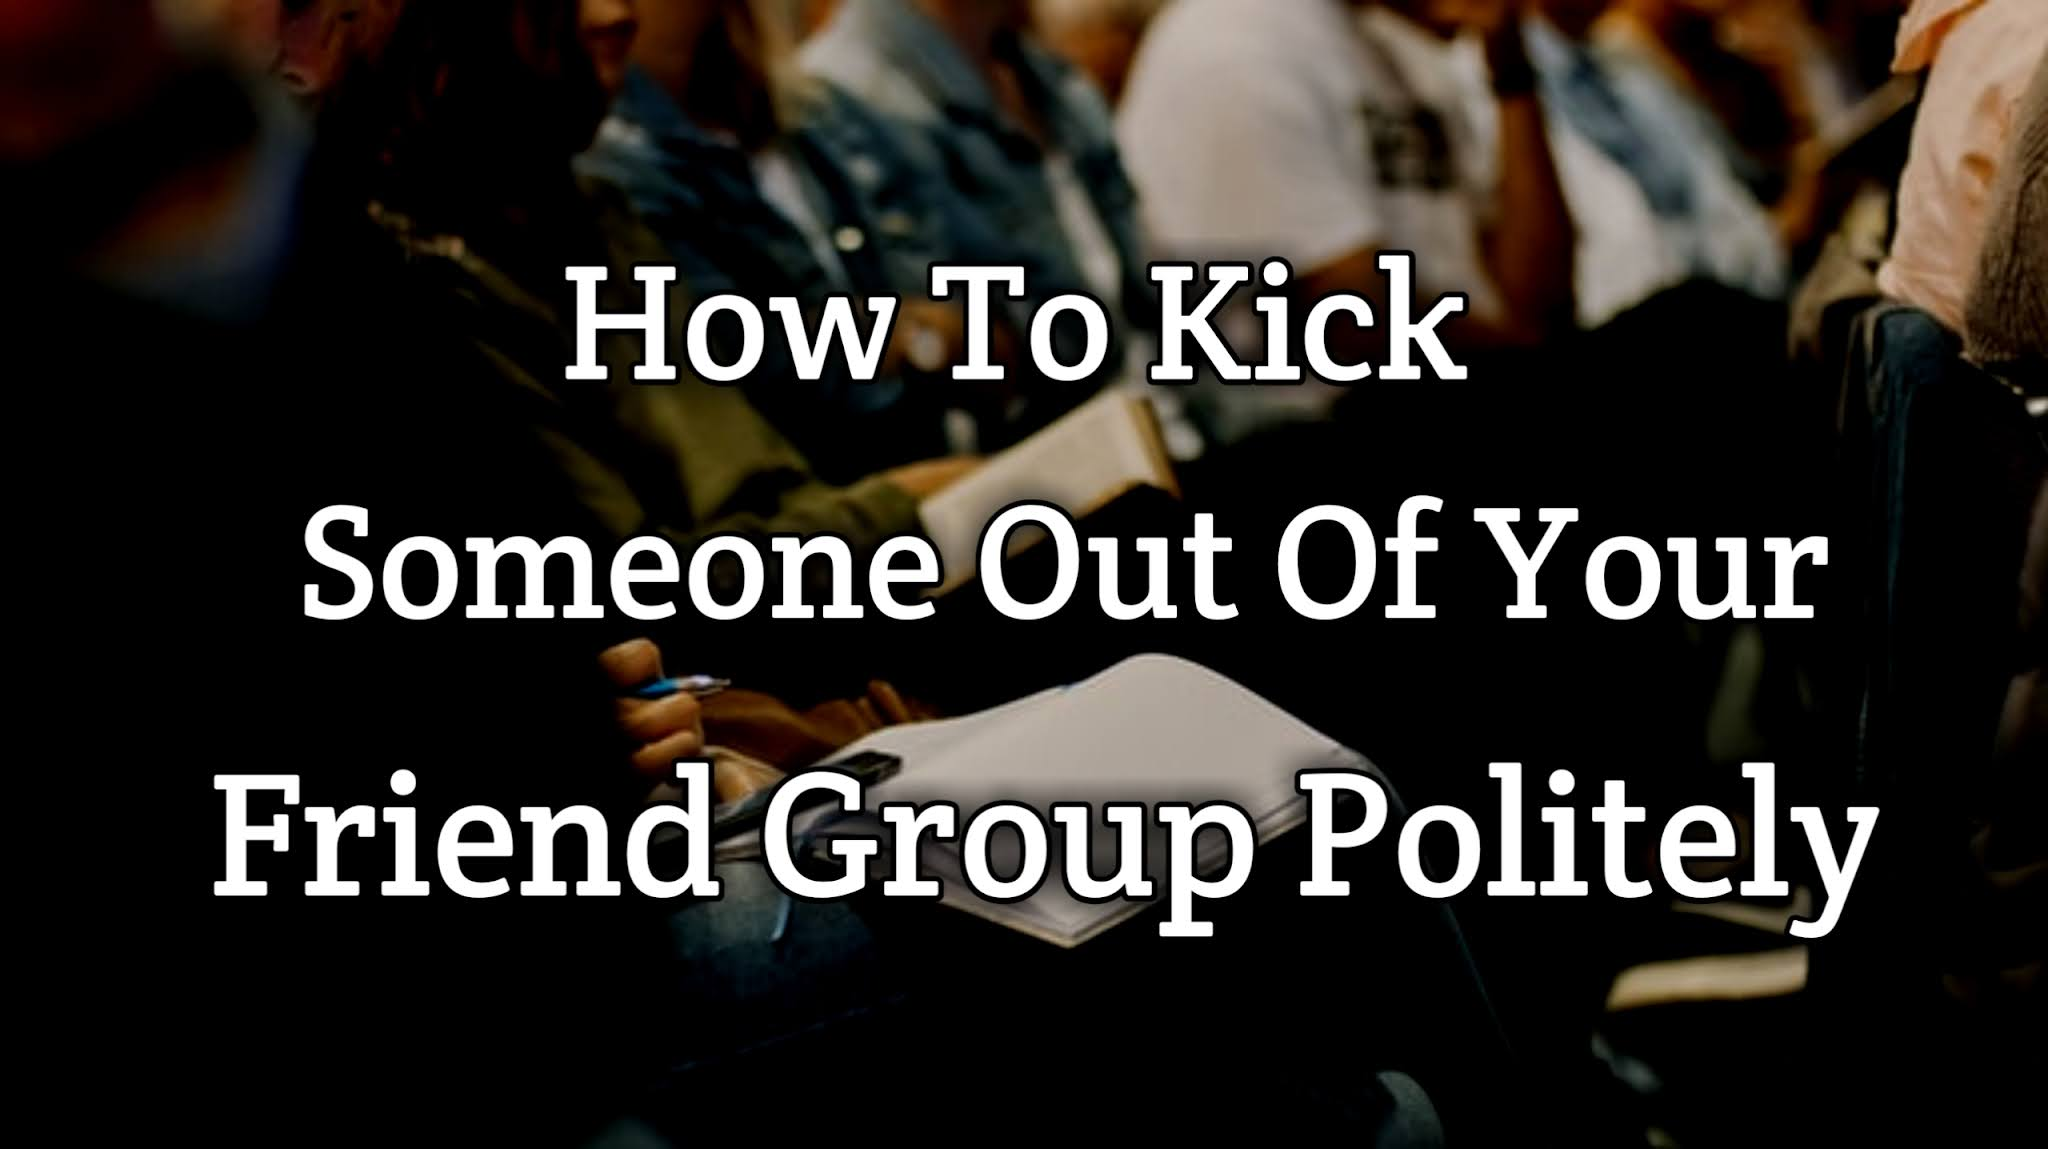 How To Kick Someone Out Of Your Friend Group Politely